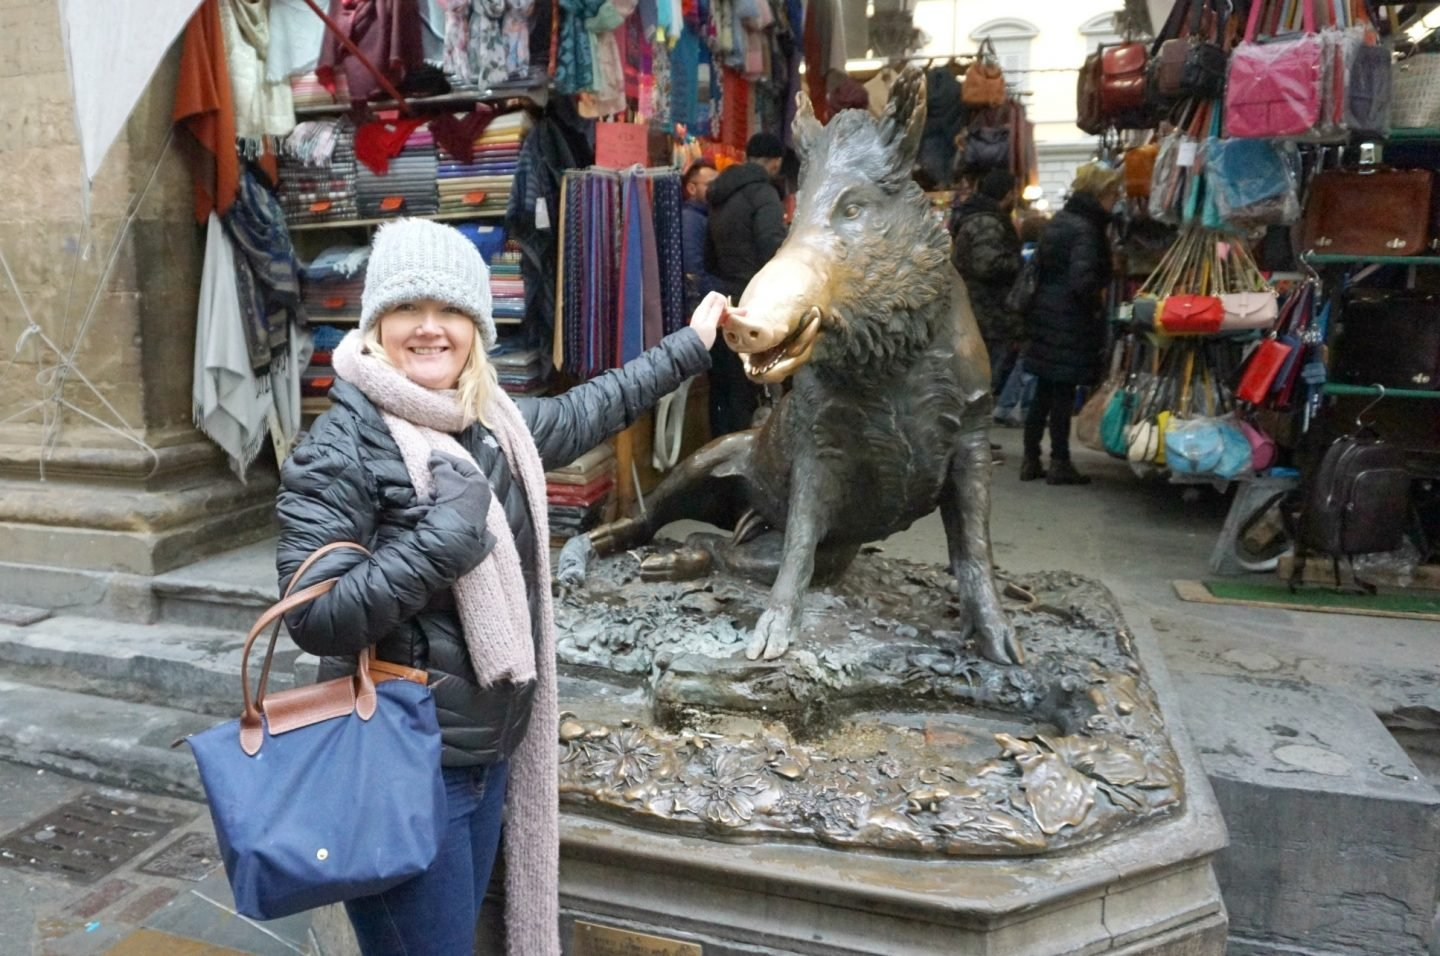 The Wild Boar of Florence www.extraordinarychaos.com